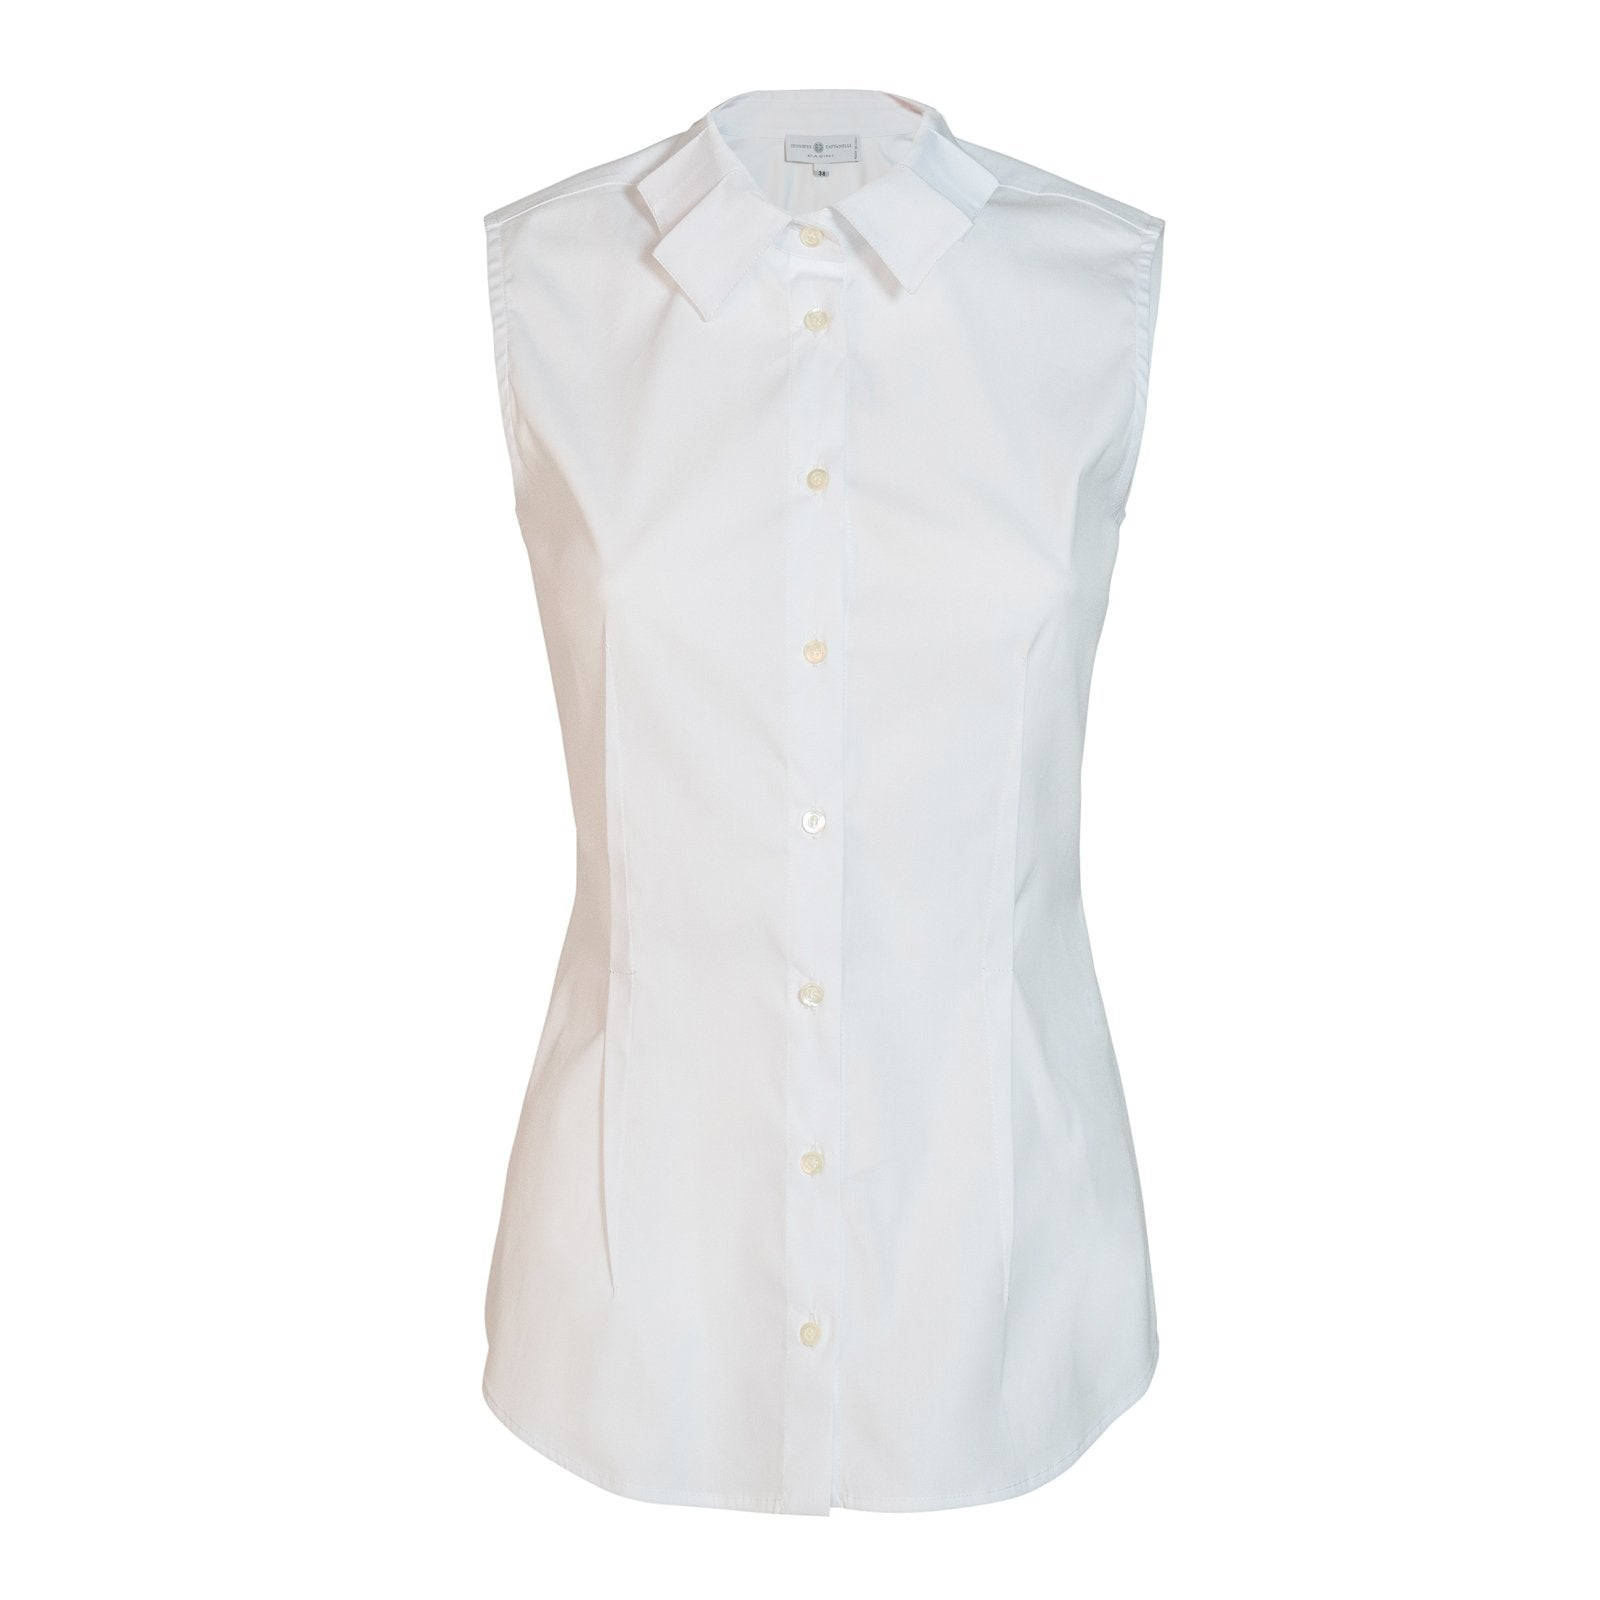 Women Sleeveless Cotton Shirt In White - Jennifer Tattanelli